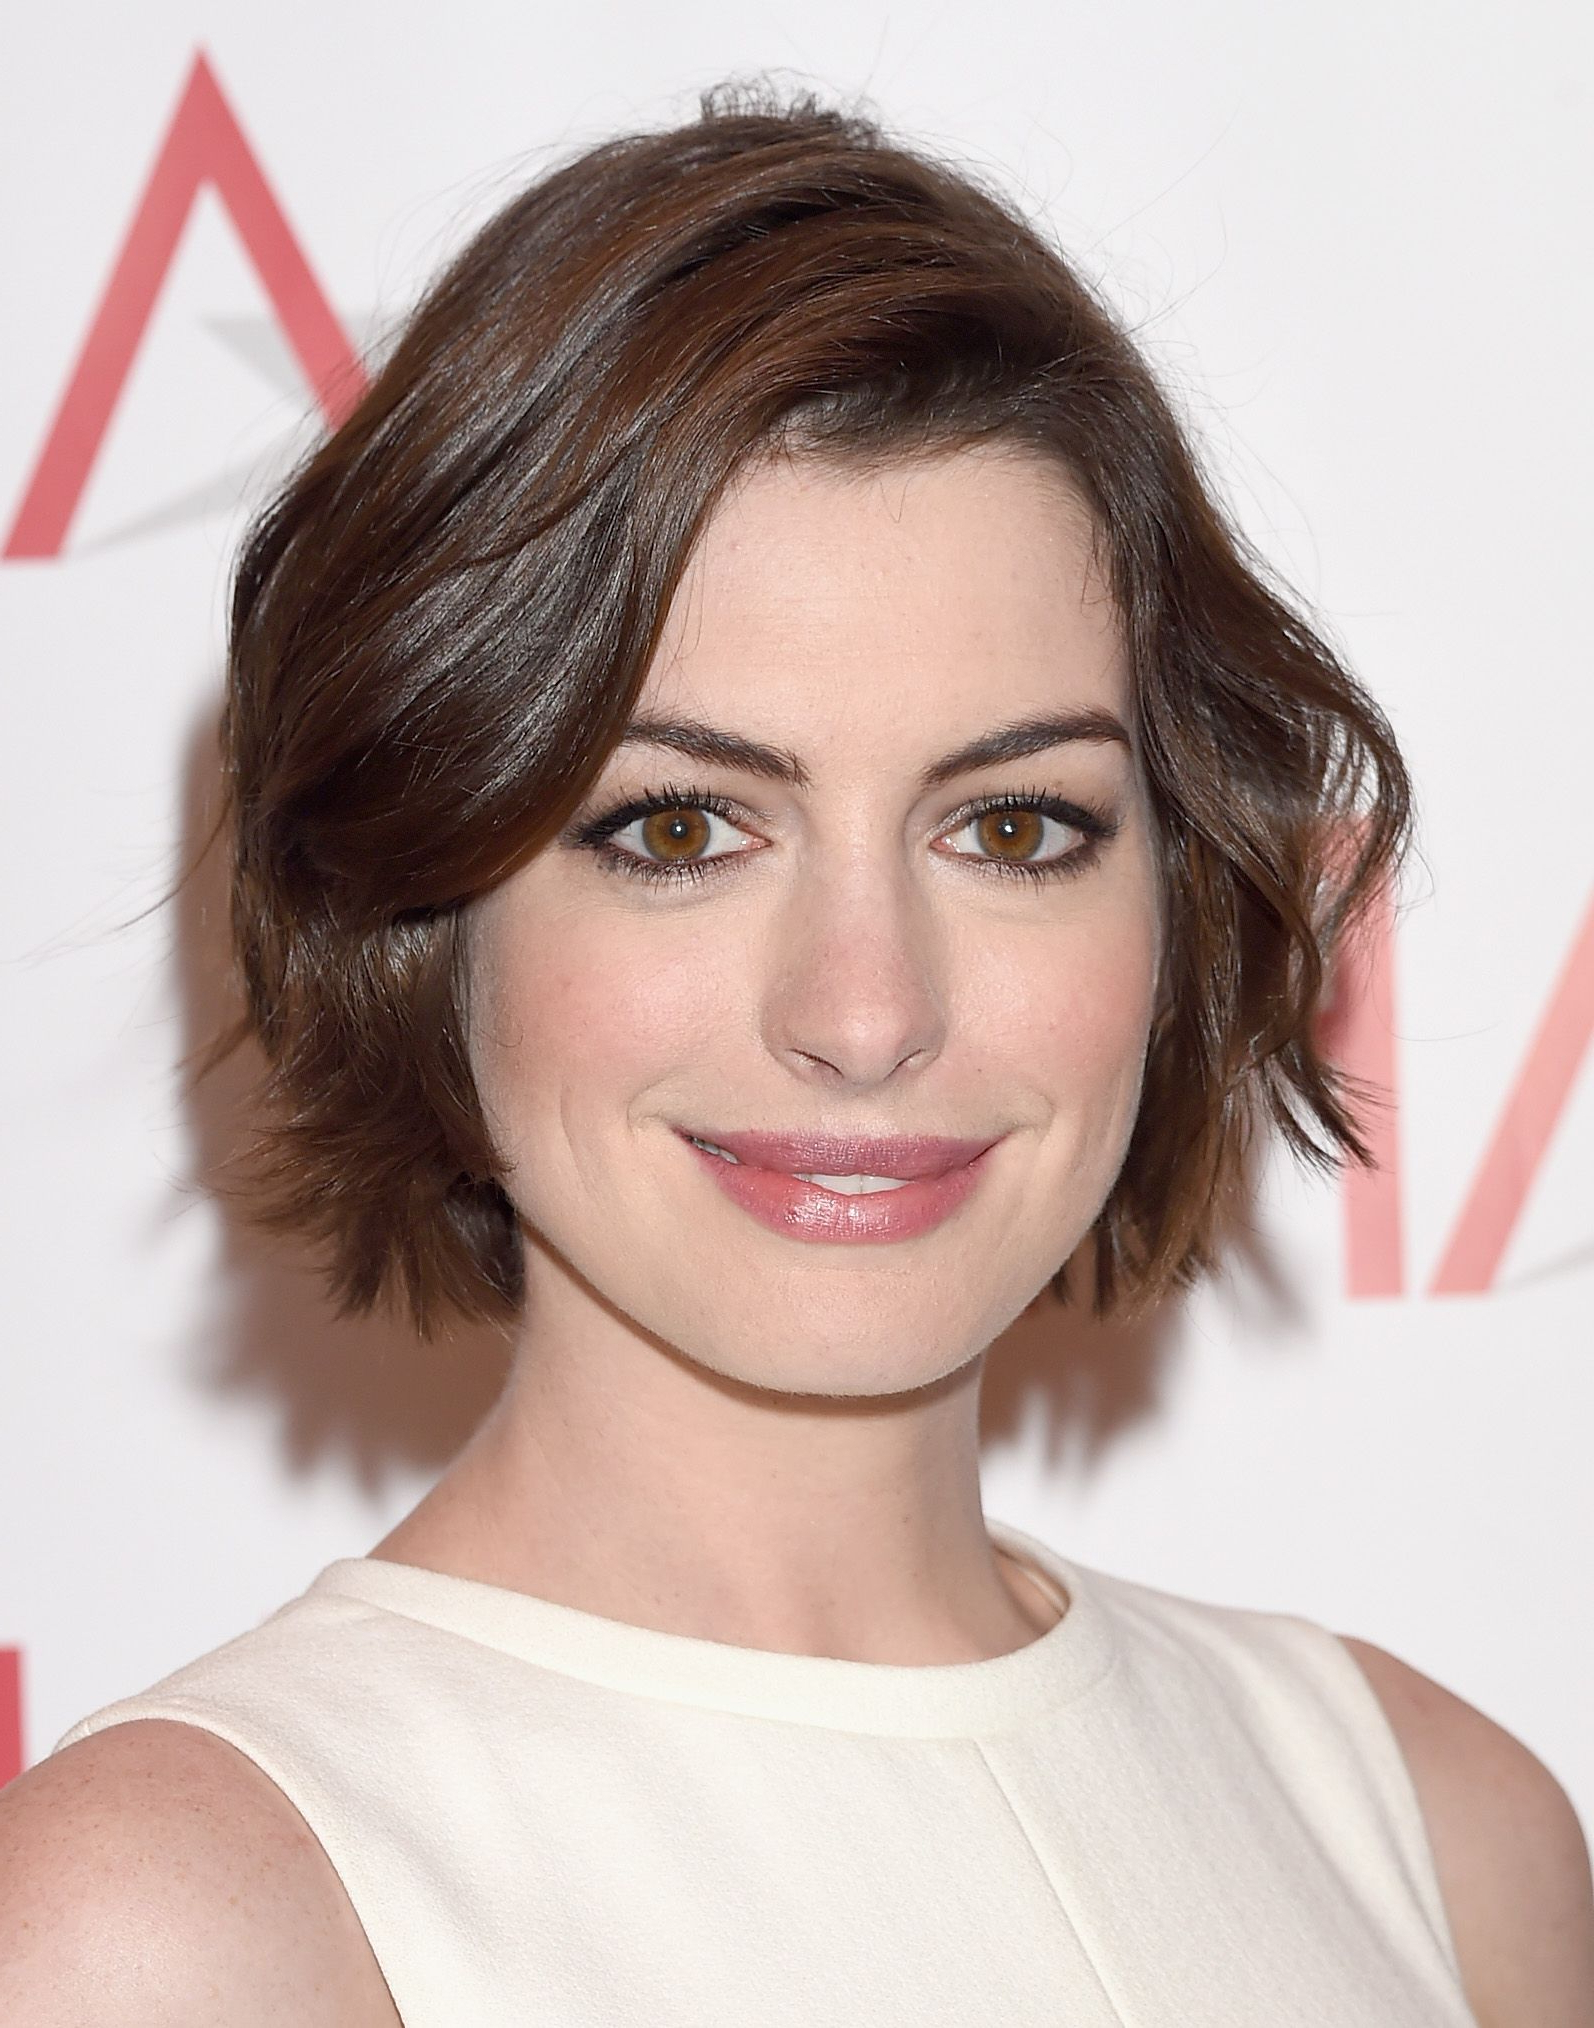 Most Recently Released Medium Haircuts For Women In Their 30S Inside 35 Best Haircuts For Women Over 30 – Short & Long Hairstyle Ideas (Gallery 2 of 20)